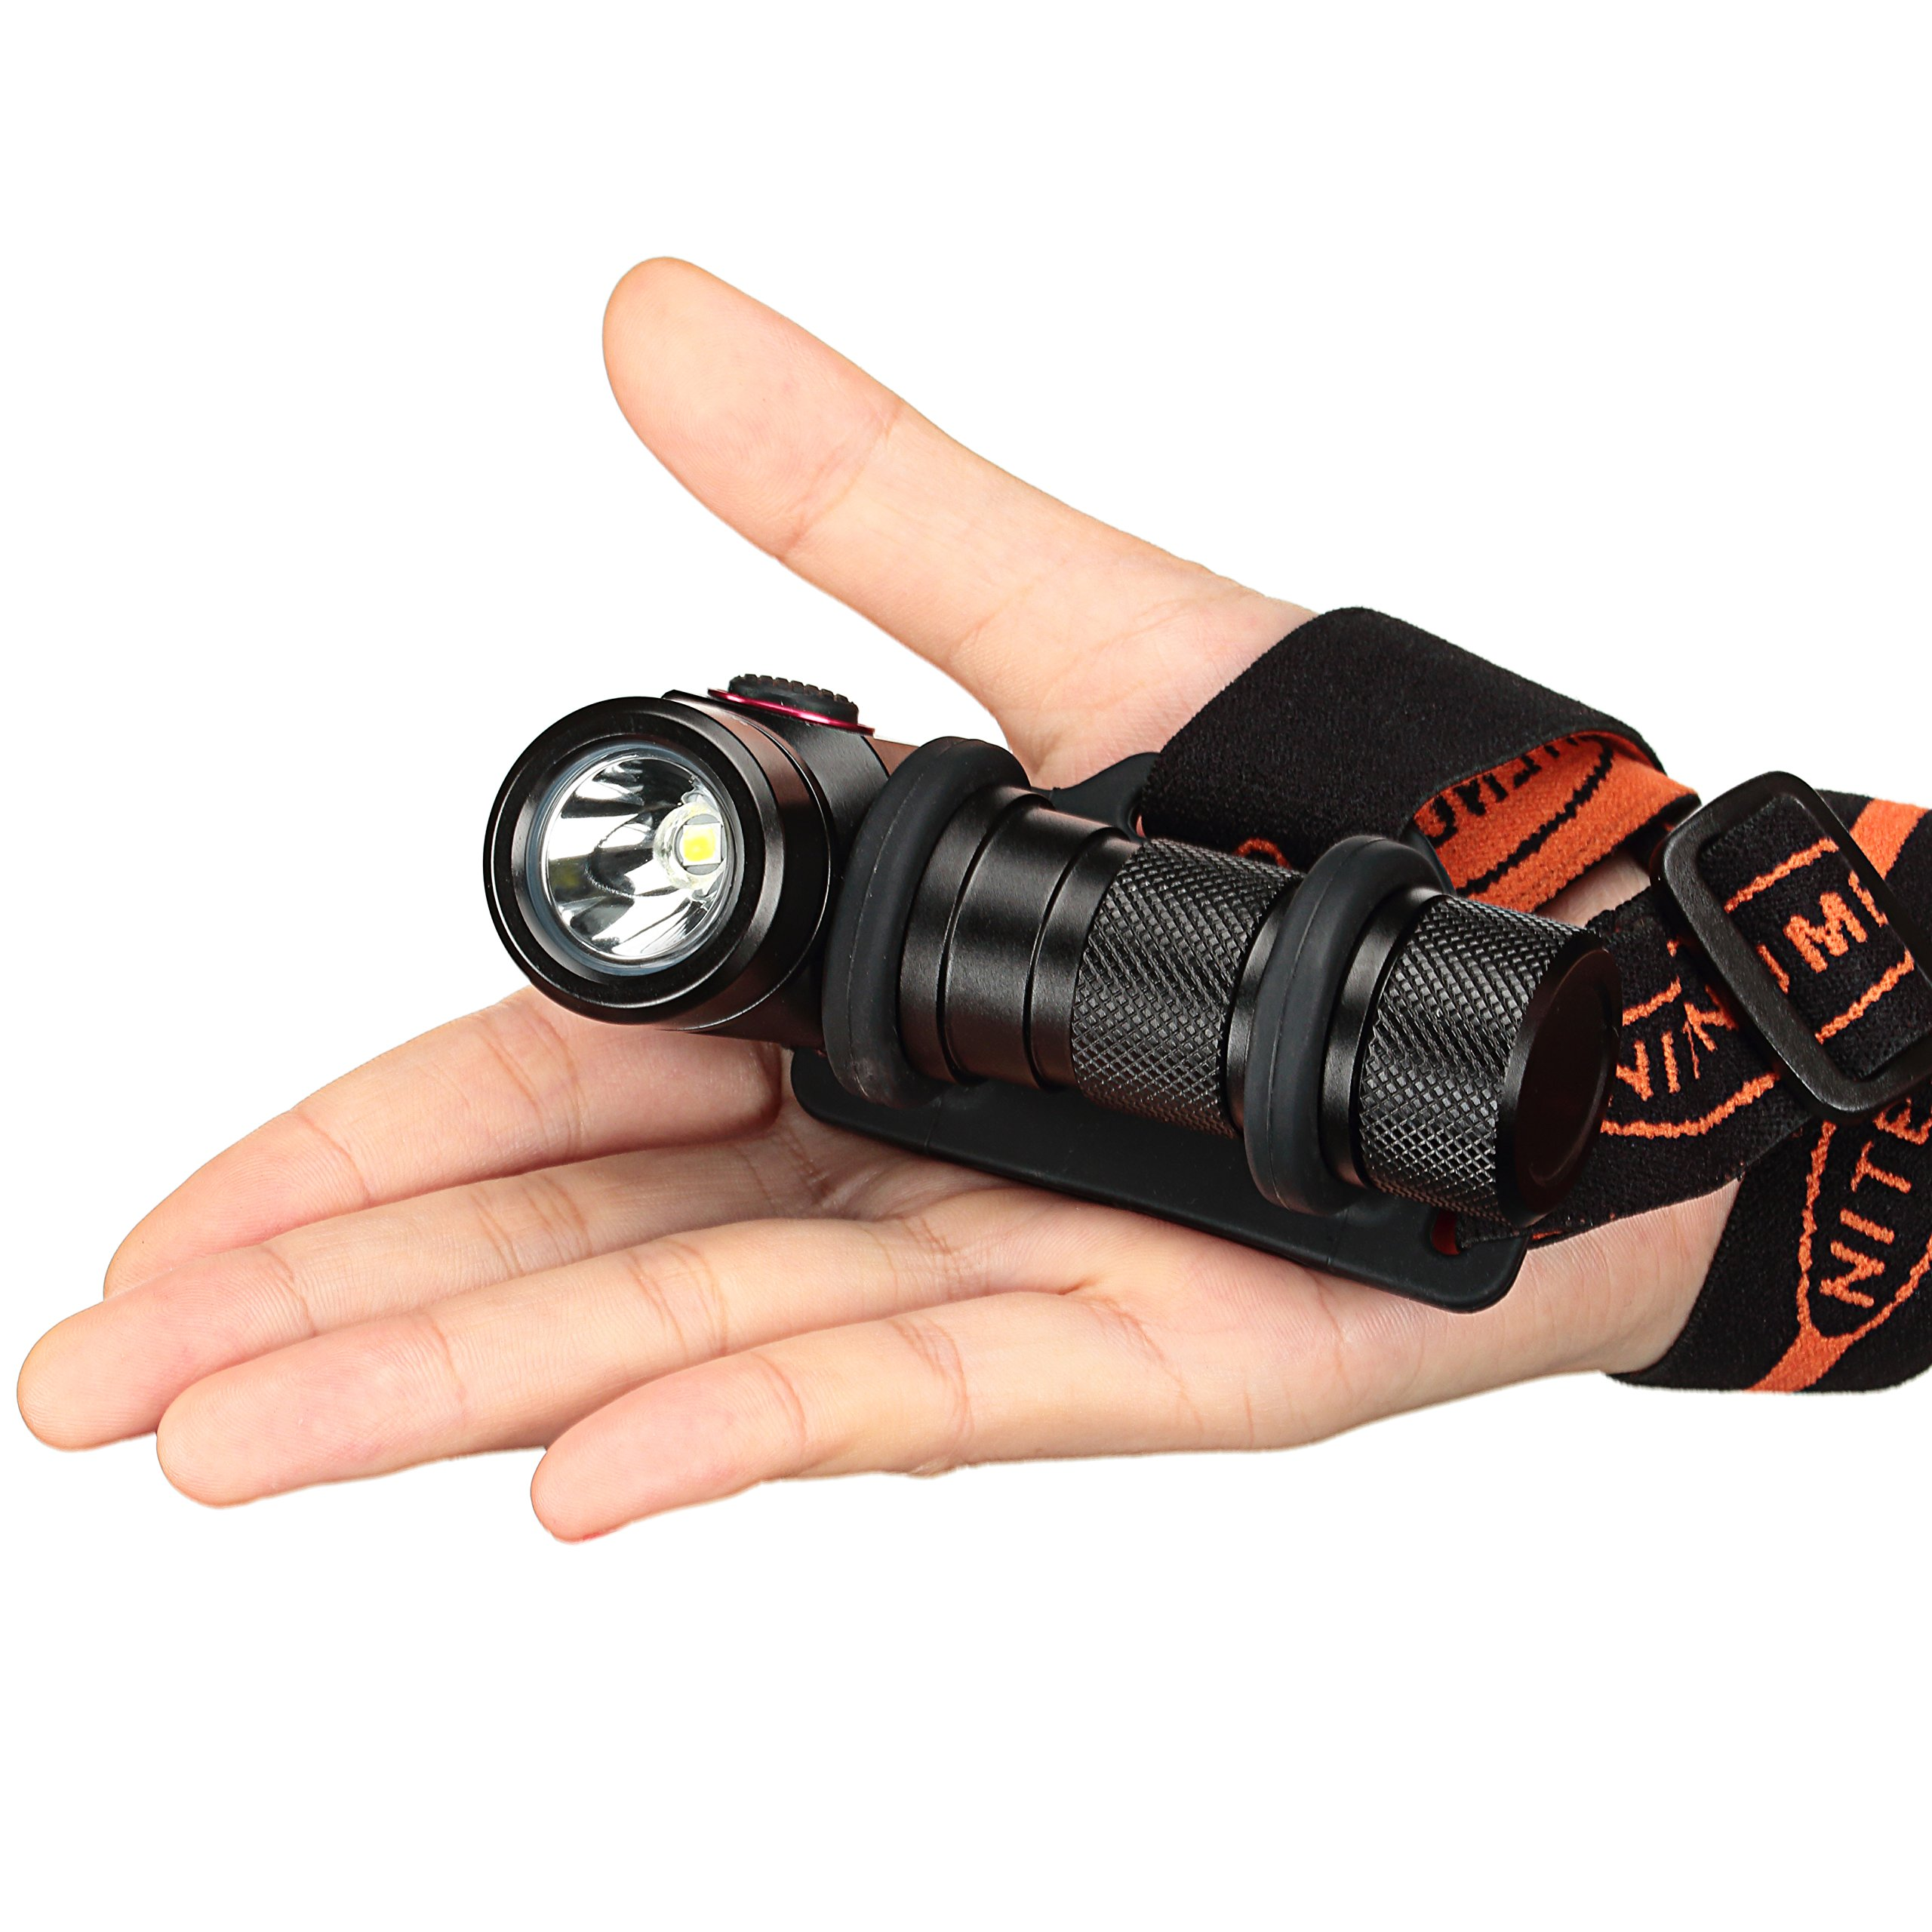 USB Rechargeable Headlamp,CREE XP-L V5 LED Super Bright LED Headlamp with Rechargeable 18650 Batteries-nitenumen H01 by NITENUMEN (Image #4)